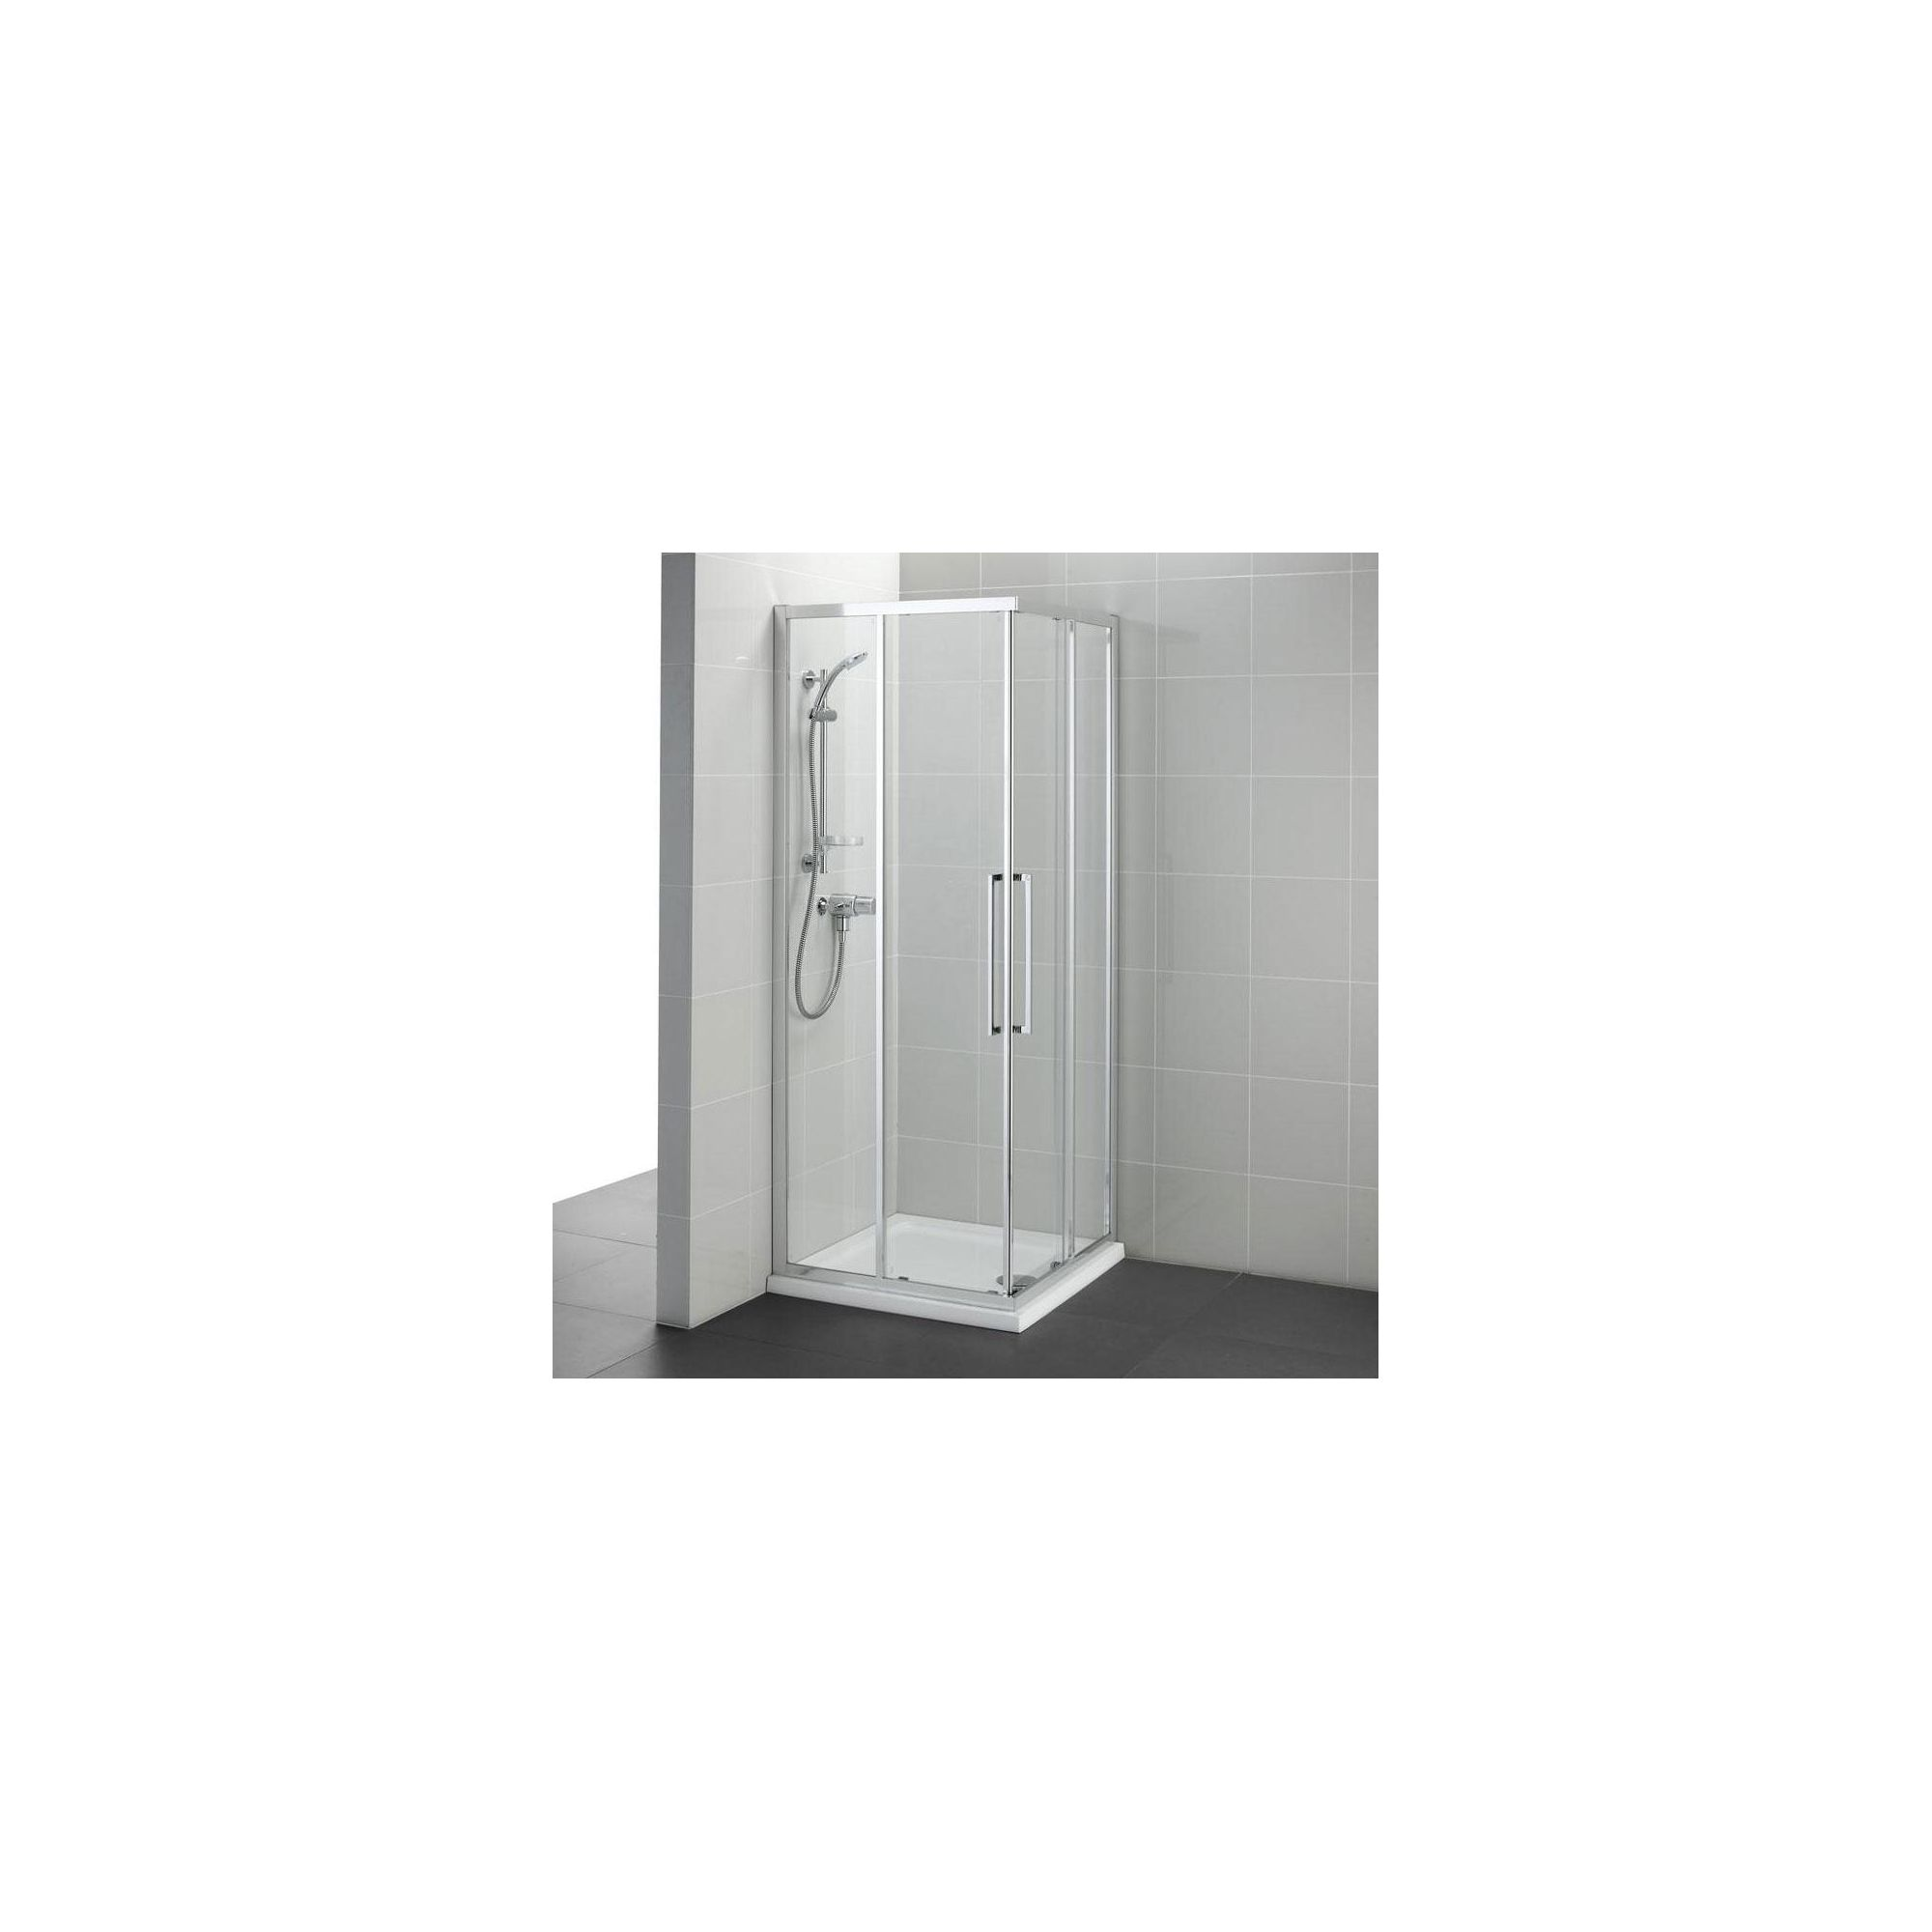 Ideal Standard Kubo Corner Entry Shower Enclosure, 900mm x 900mm, Bright Silver Frame, Low Profile Tray at Tesco Direct